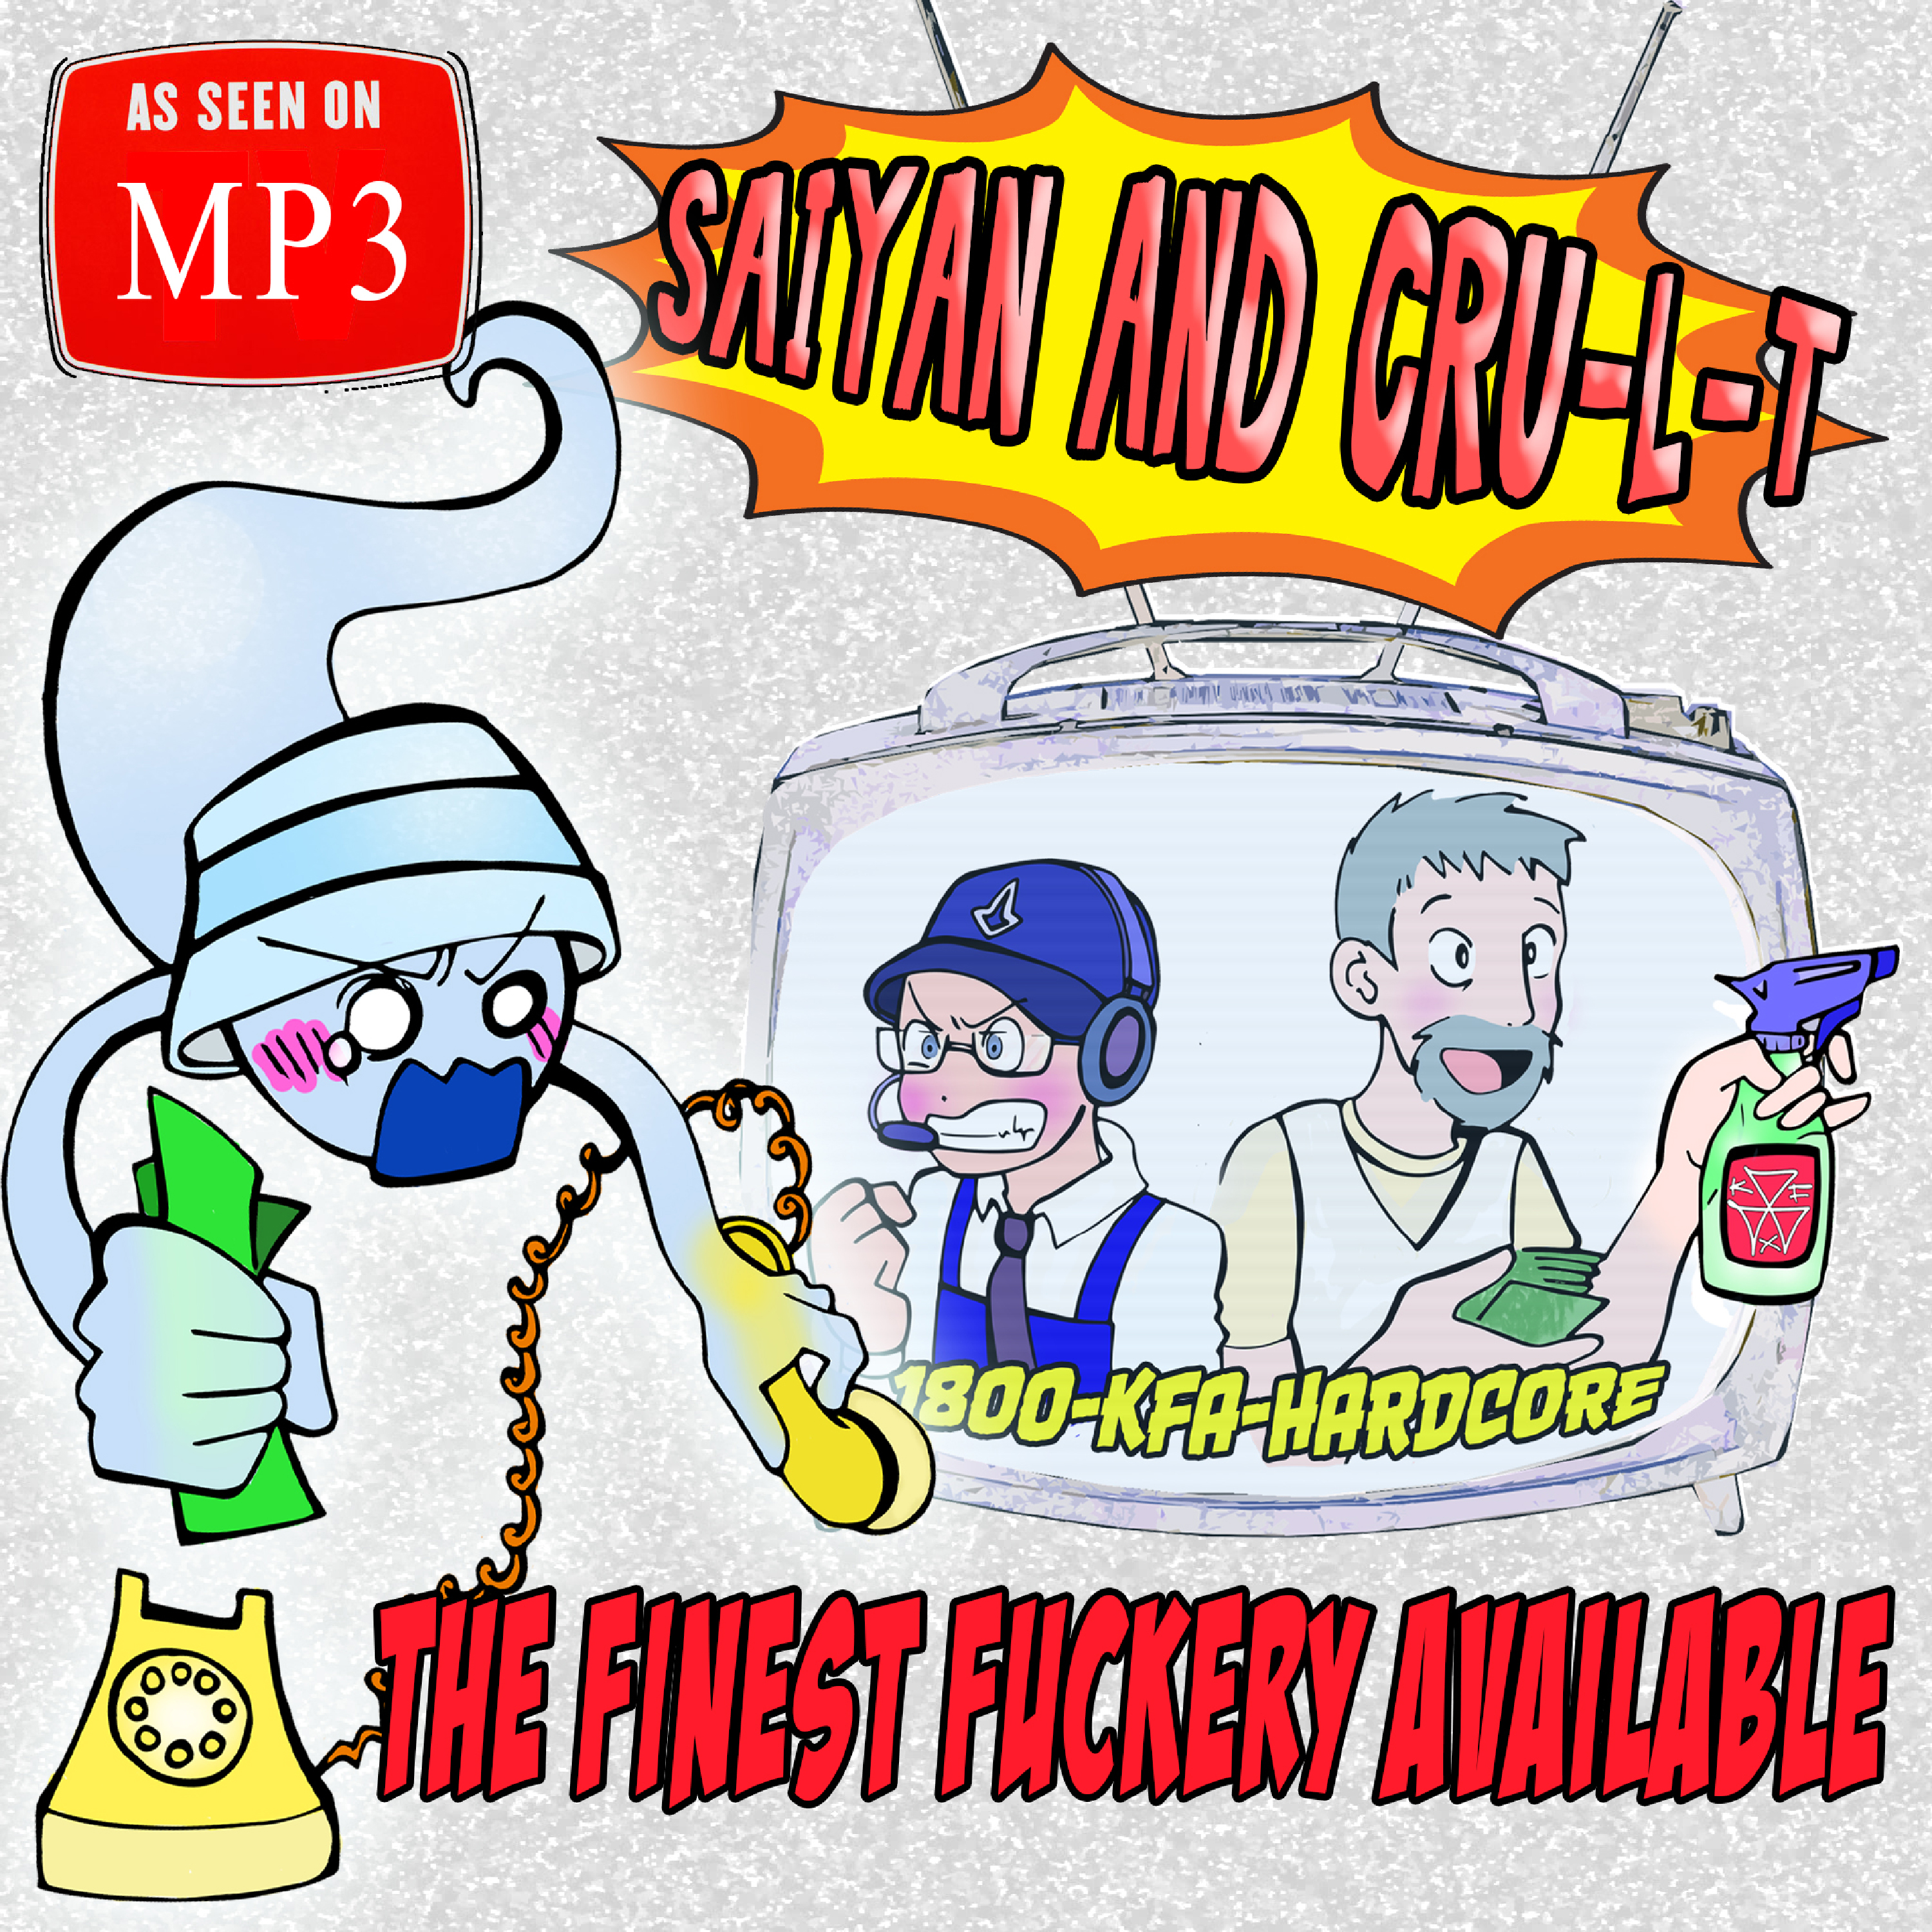 [KFA074] Saiyan & Cru-l-t - The Finest Fuckery Available EP (Digital Only)